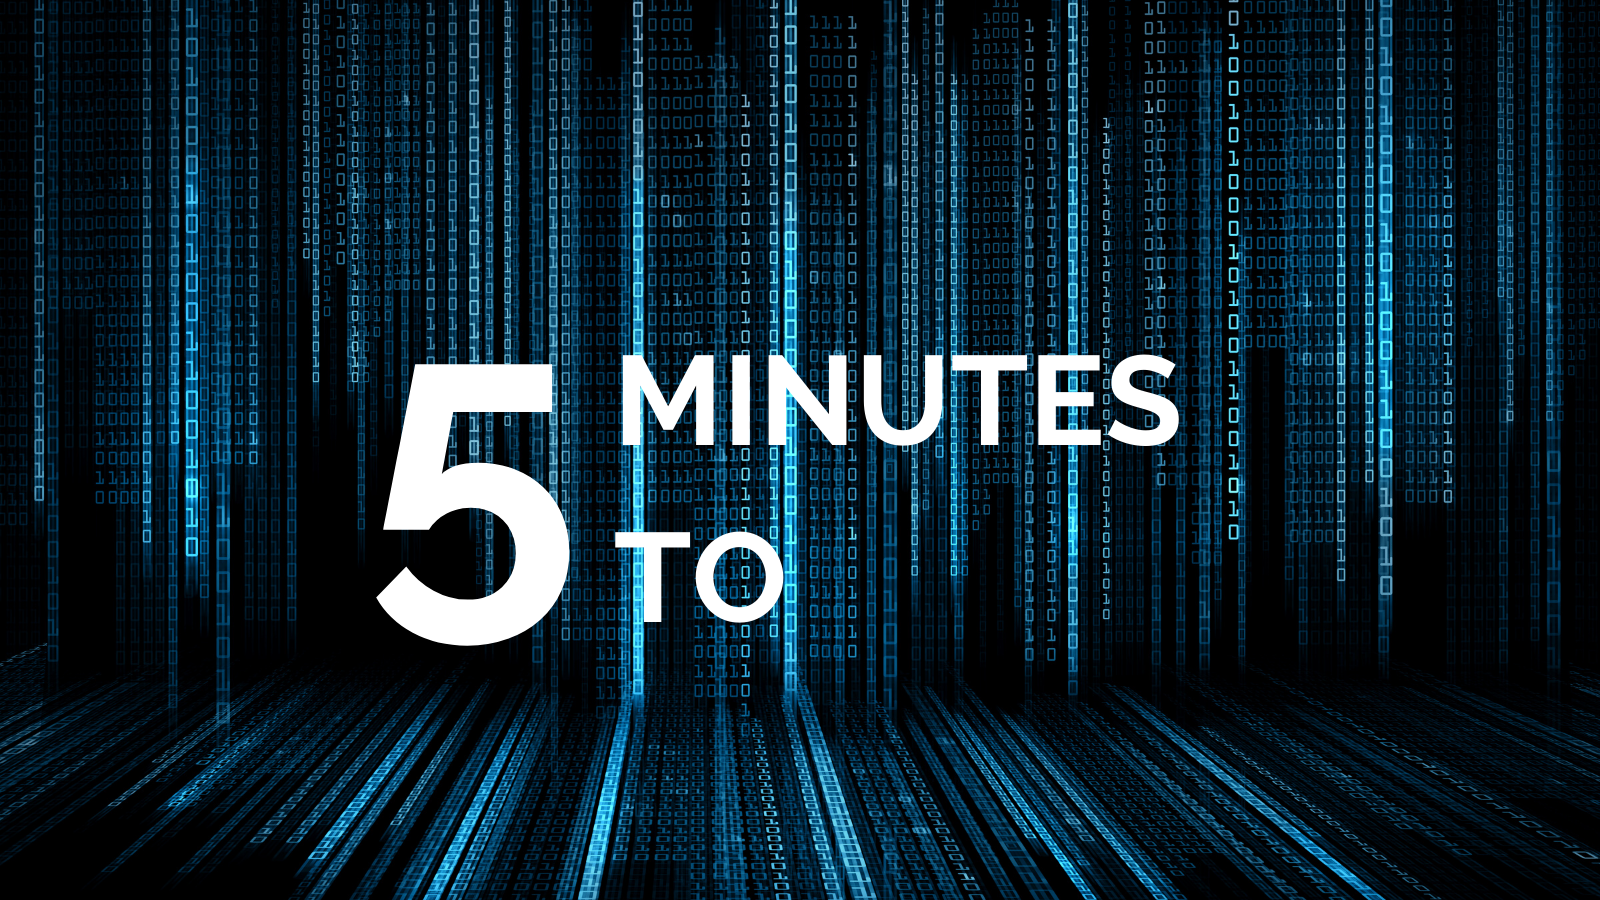 5 Minutes To: Algorithms and Social Media